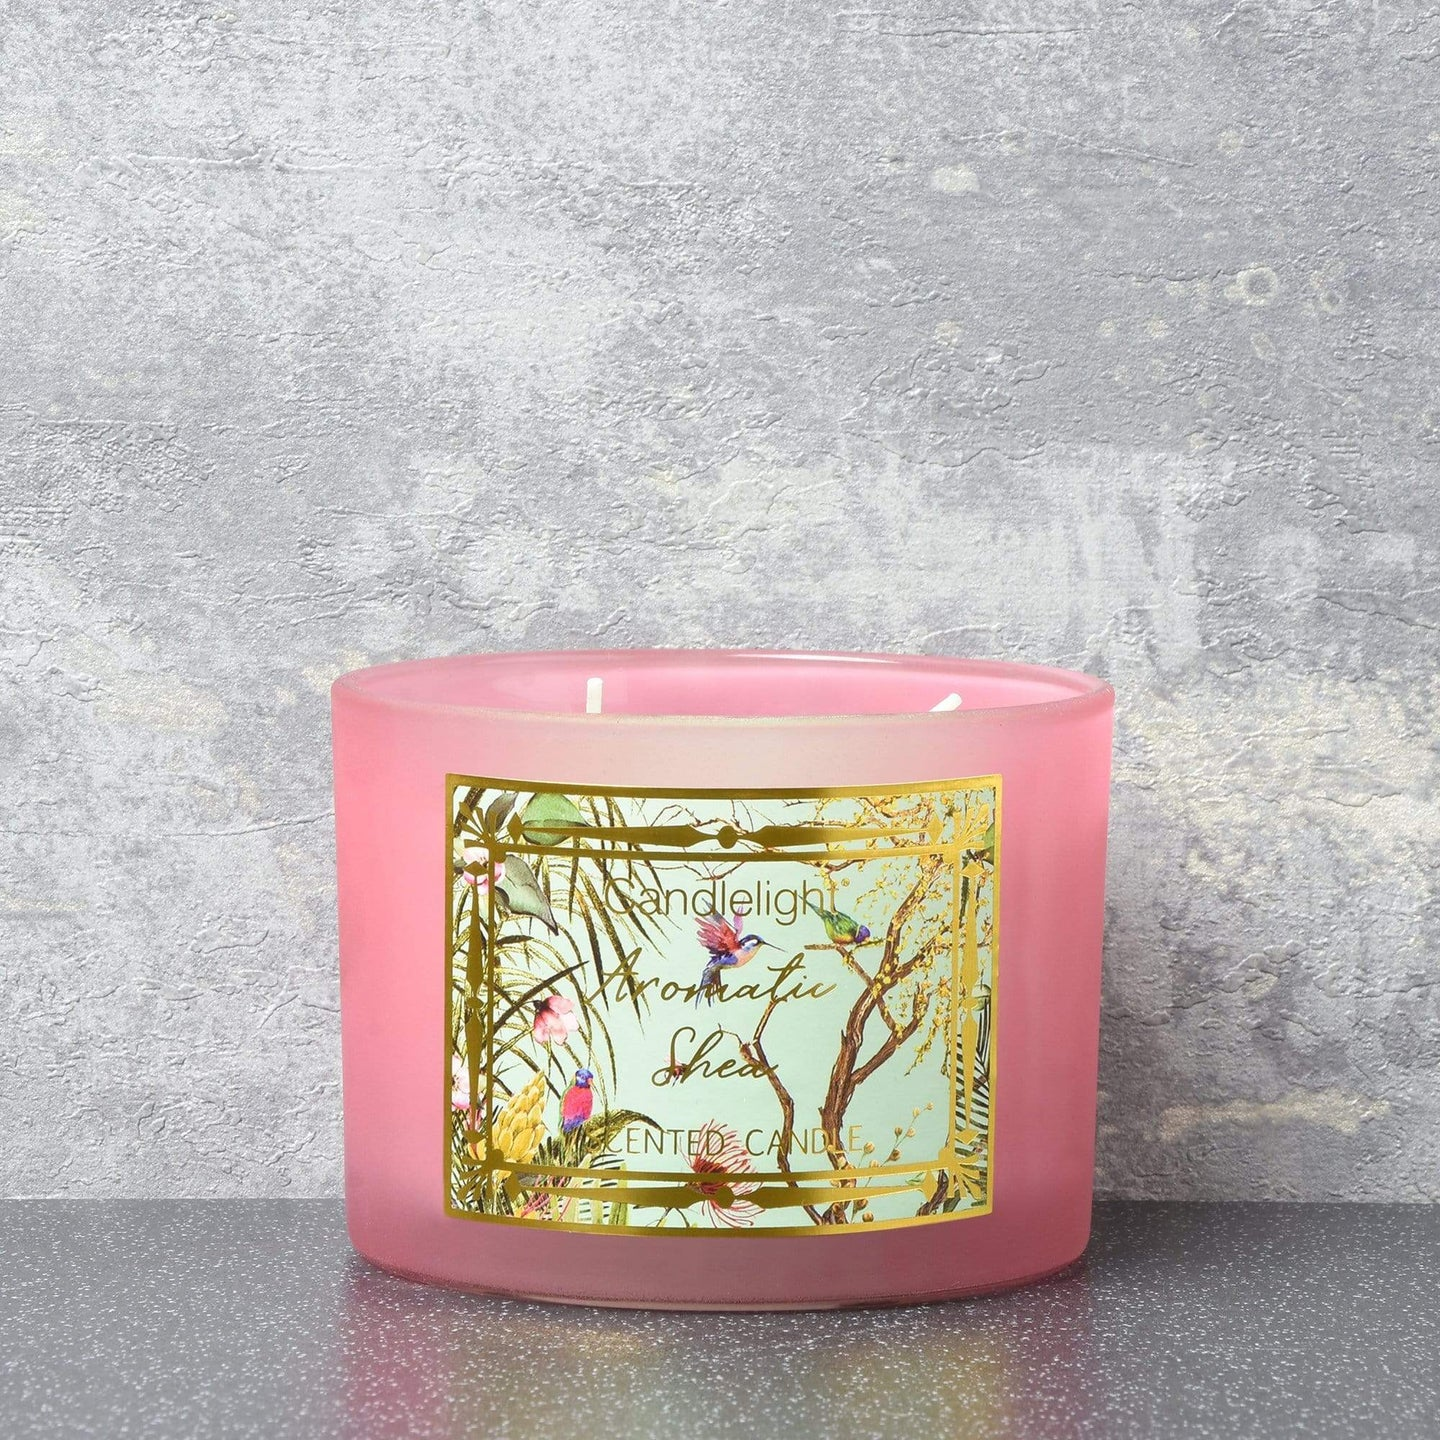 Candlelight Chinoiserie 2 Wick Wax Filled Candle Pot Aromatic Shea Scent 380g - Quirky Giftz Ltd